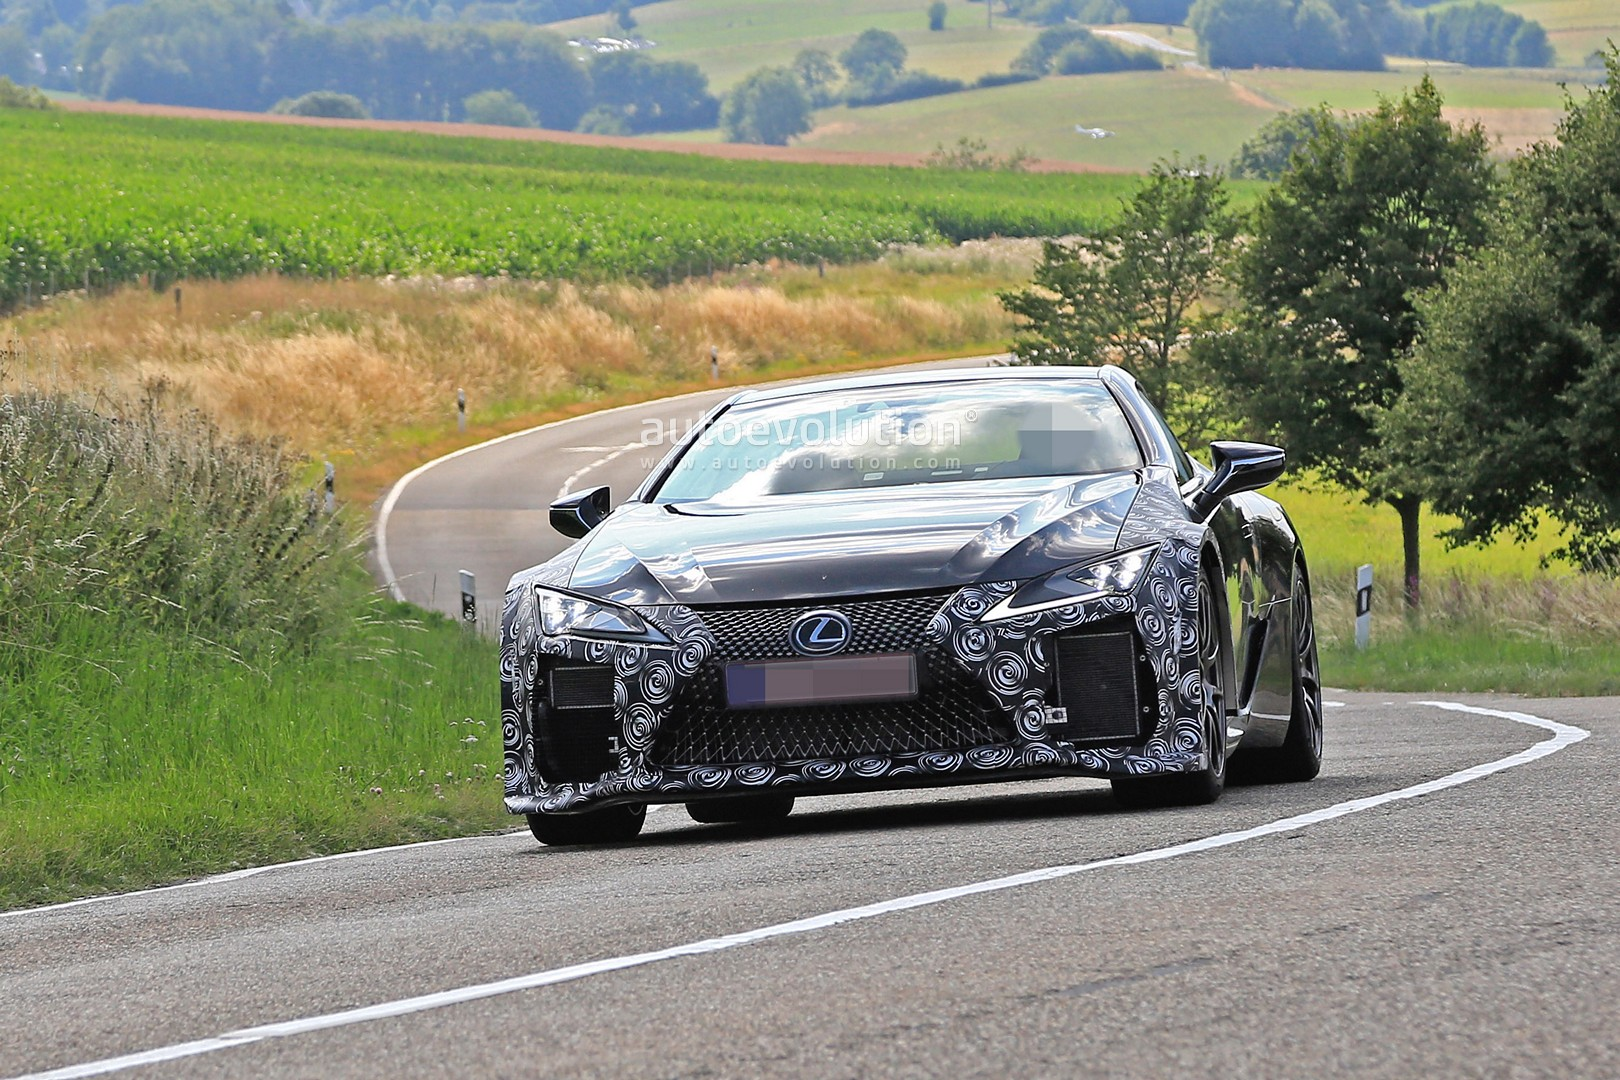 2020 Lexus Lc F Spied For The First Time Looks To Become A Japanese